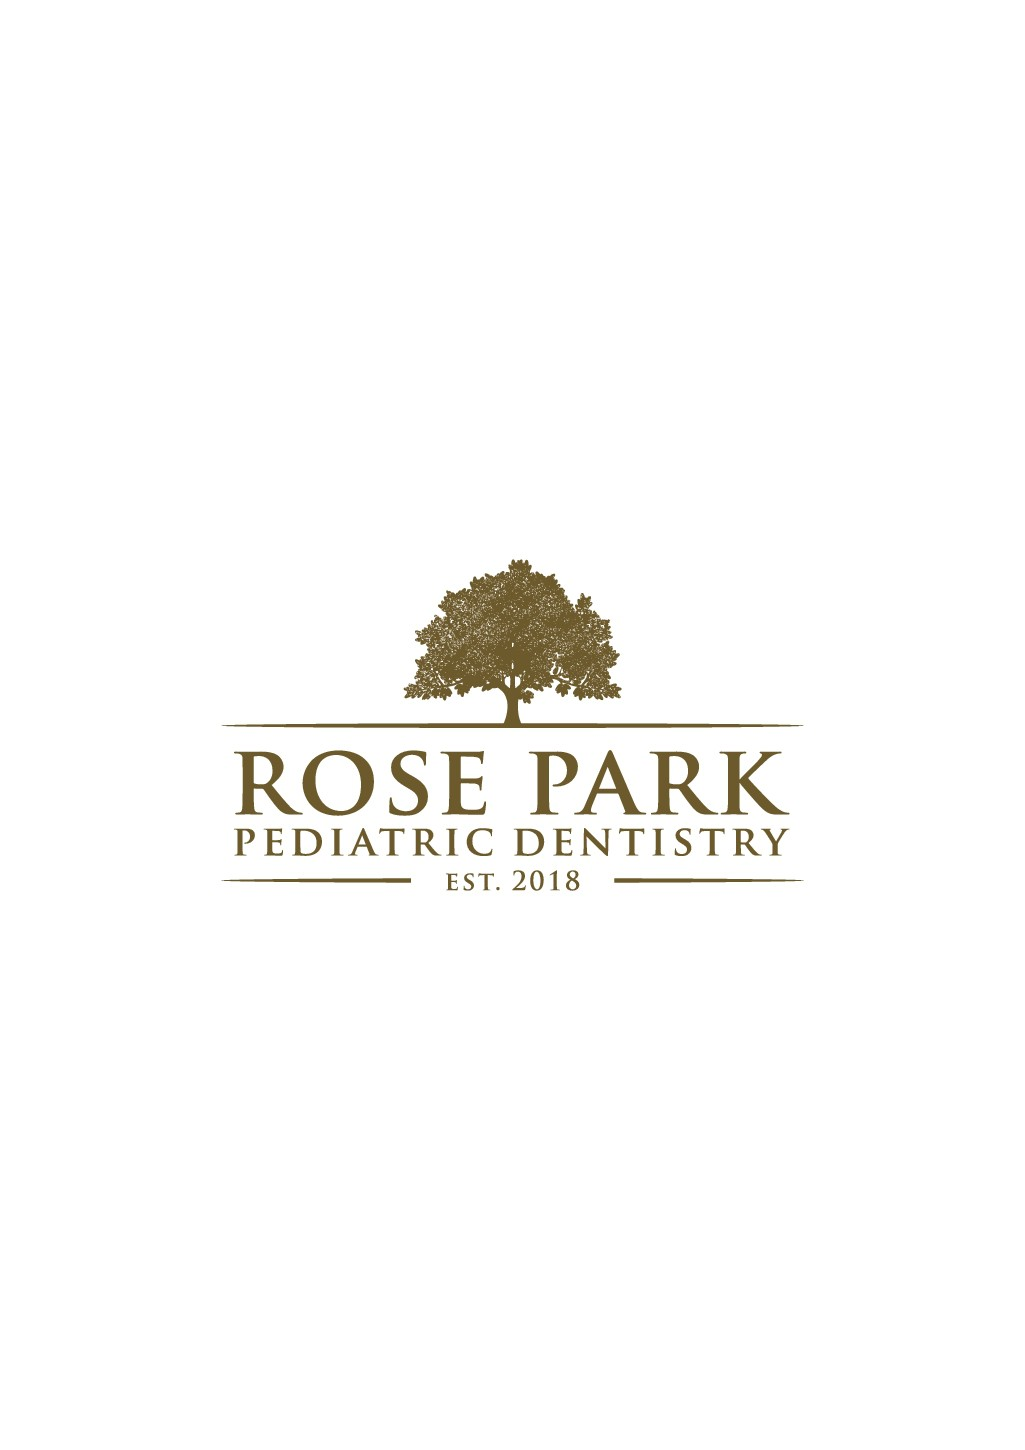 Luxurious Pediatric Dental Logo